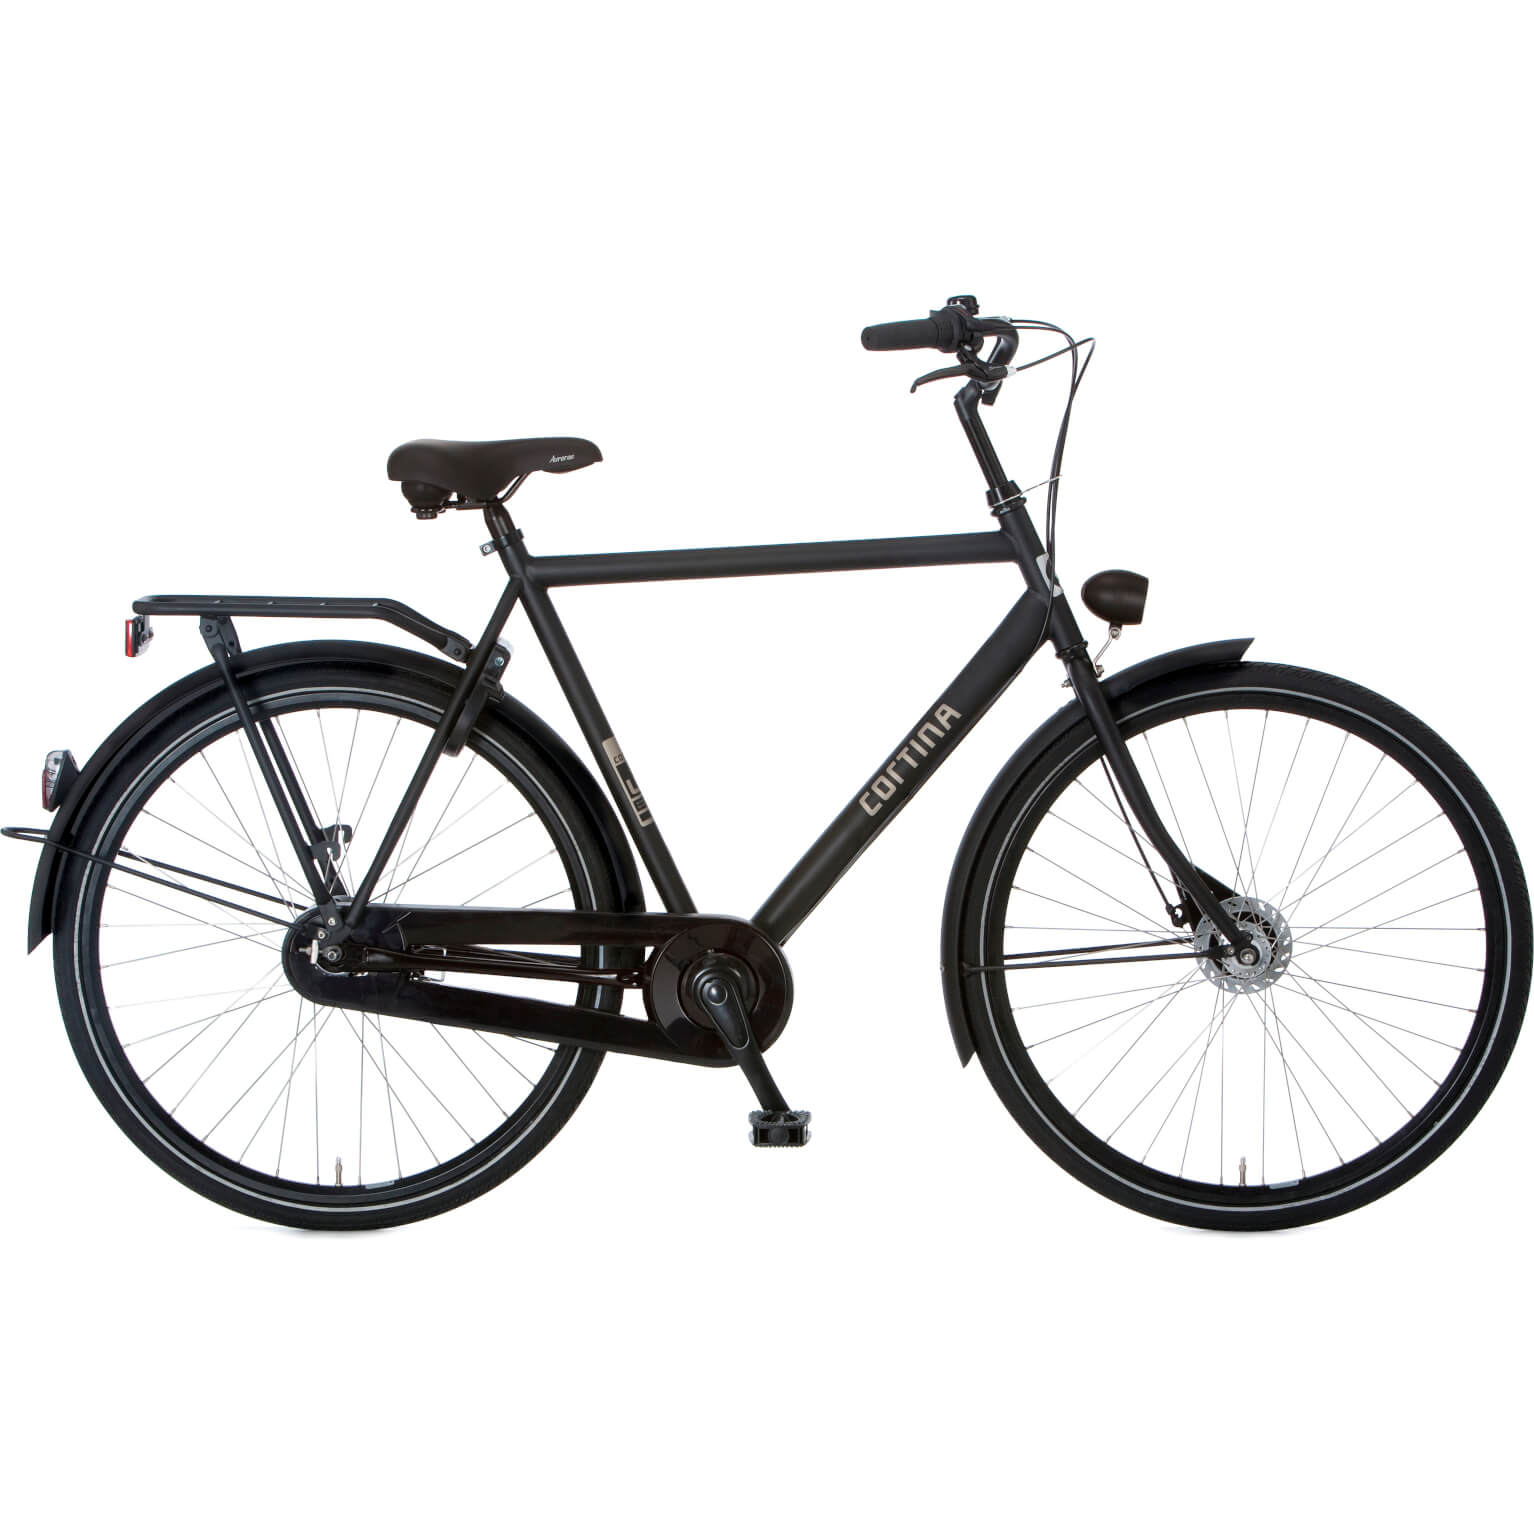 available also two single speed version with a coaster brake